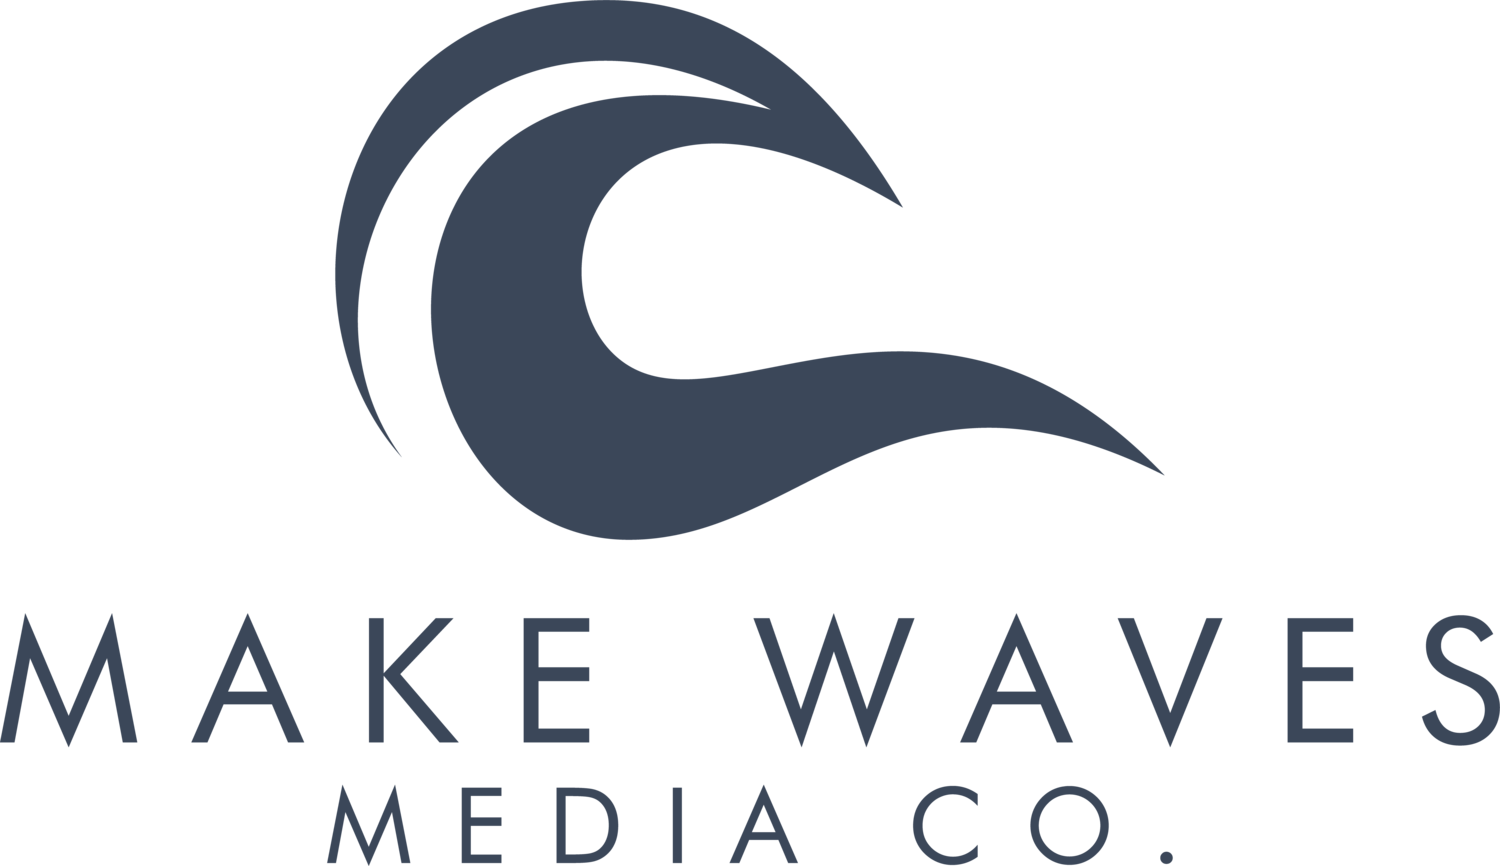 Make Waves Media Co.